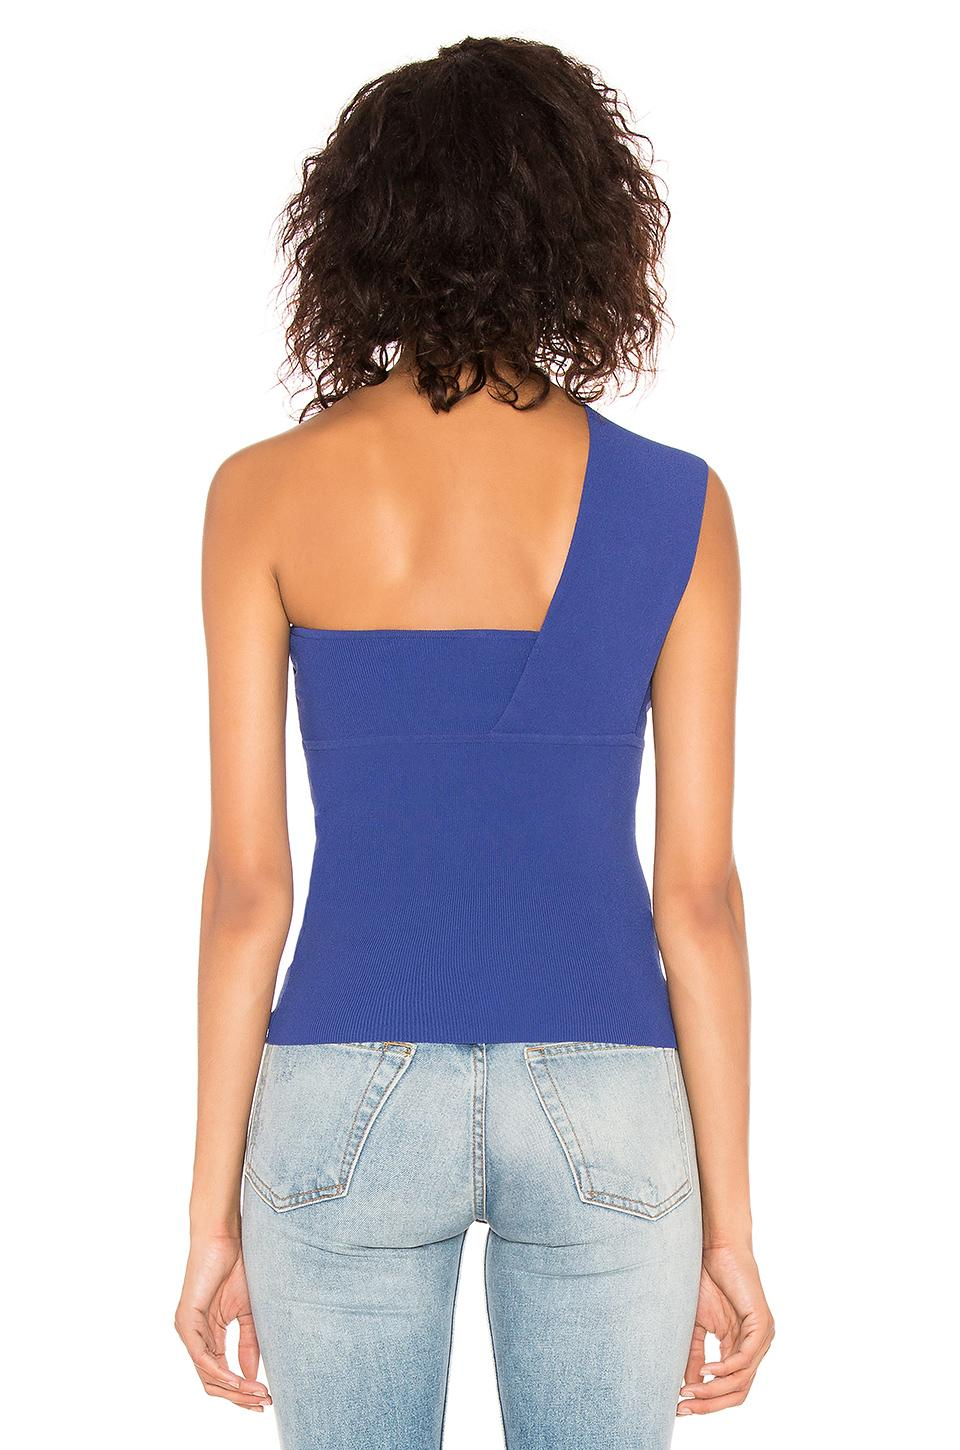 7e695a21bfee3 Autumn Cashmere - Blue One Shoulder Tube Top - Lyst. View fullscreen